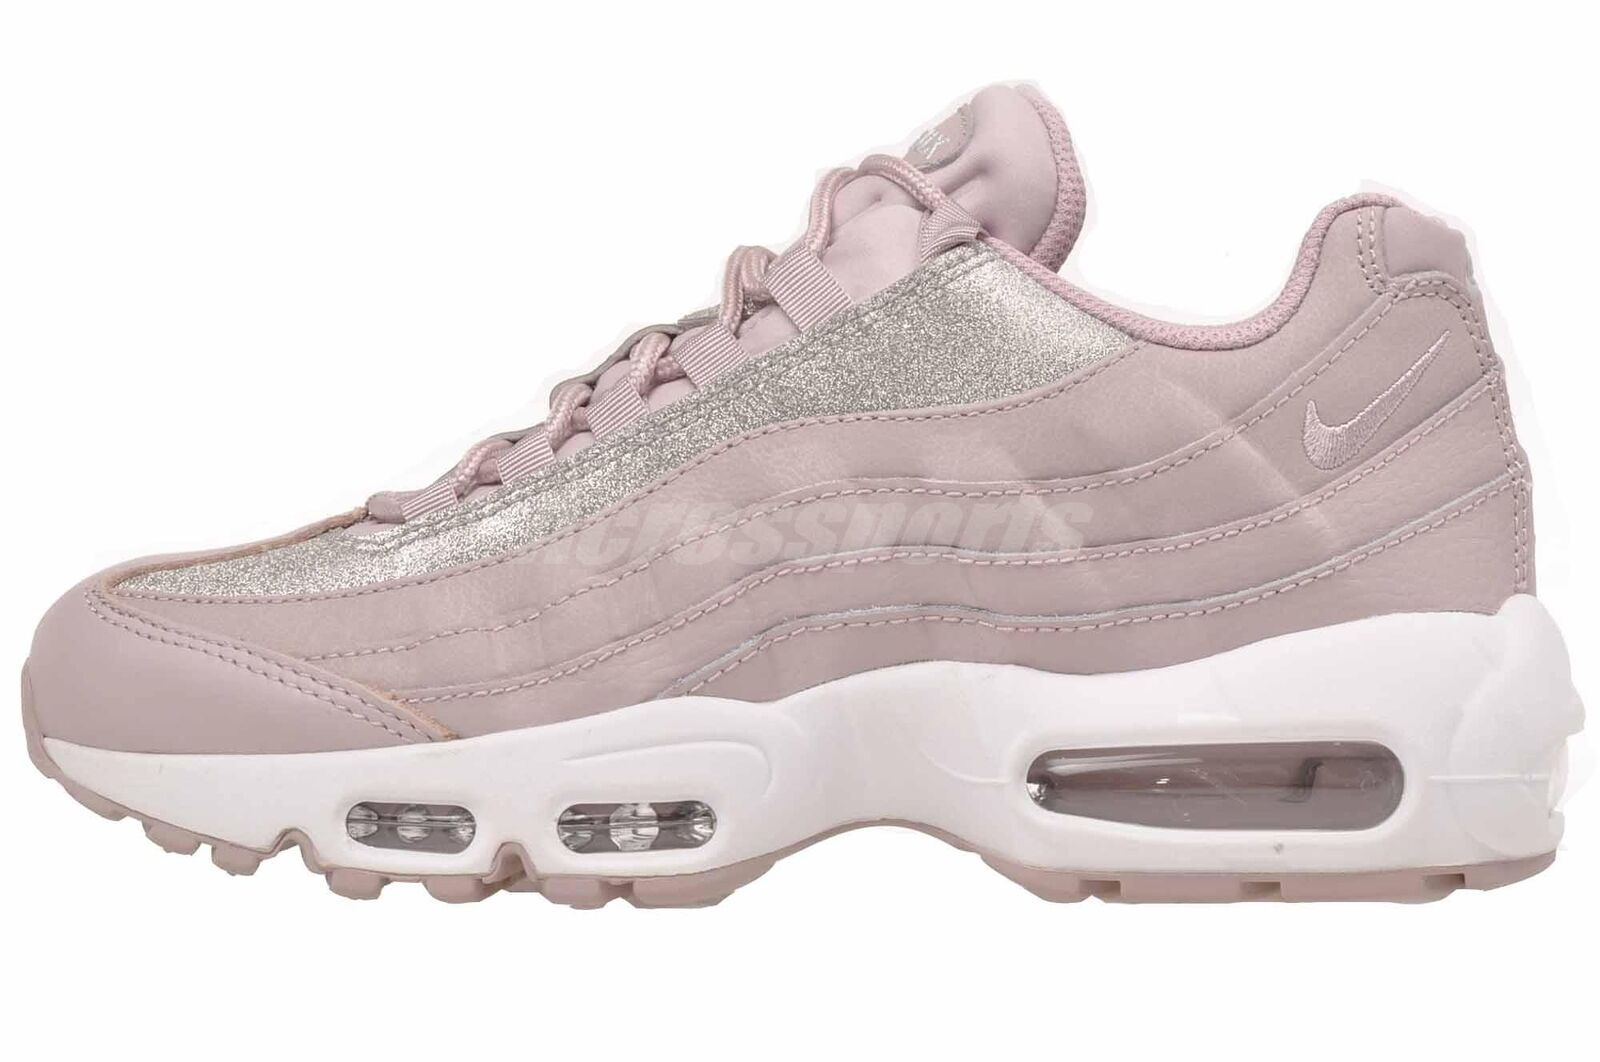 Nike Air Max 95 SE Glitter Womens At0068-600 Rose Pink Running Shoes ... a5faab7414